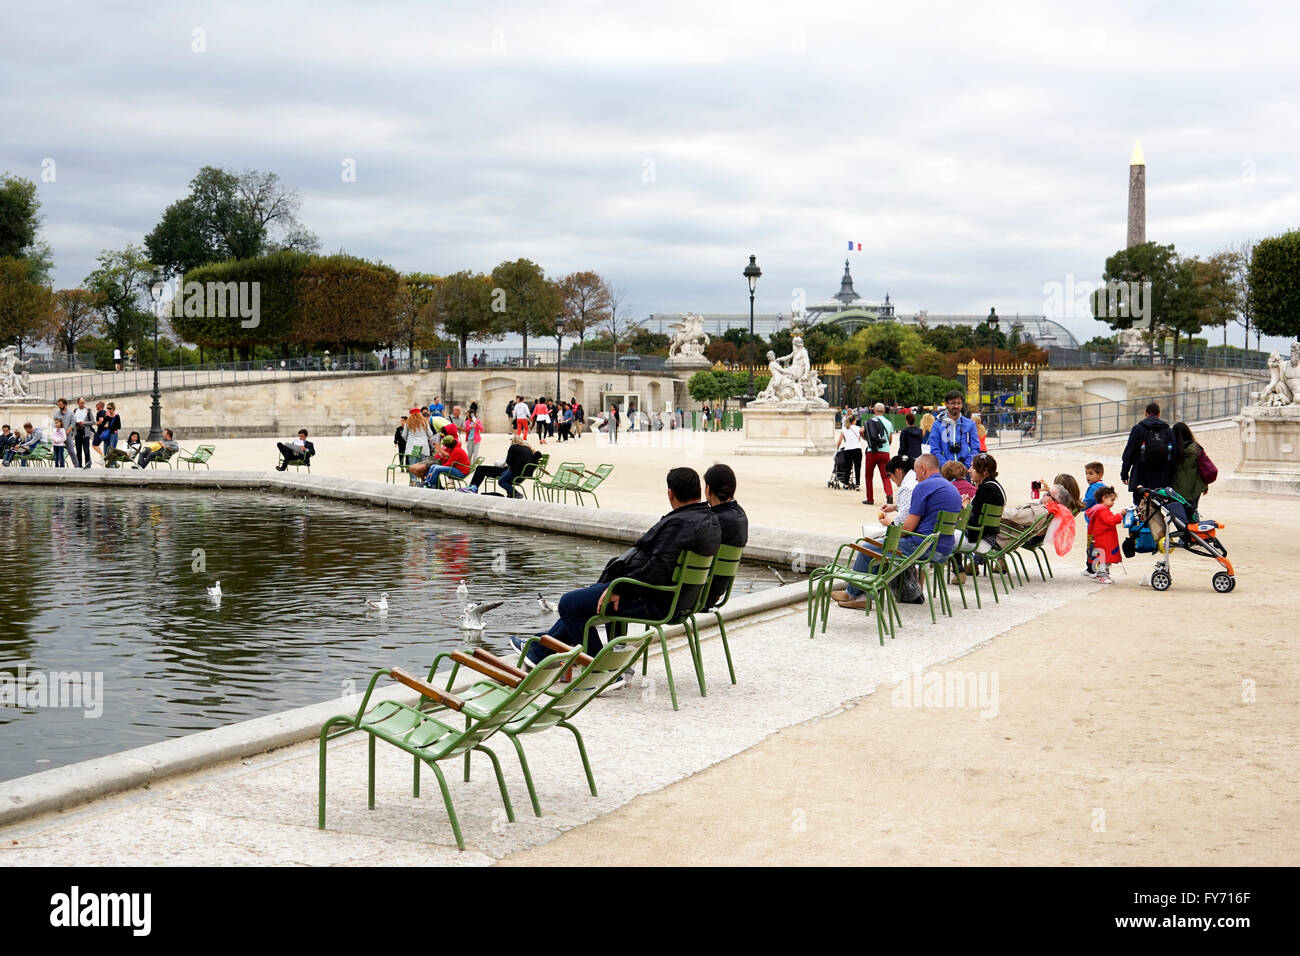 Visitors relaxing by the Grand Bassin Octagonal inTuileries Garden, Jardin des Tuileries,Paris. France - Stock Image